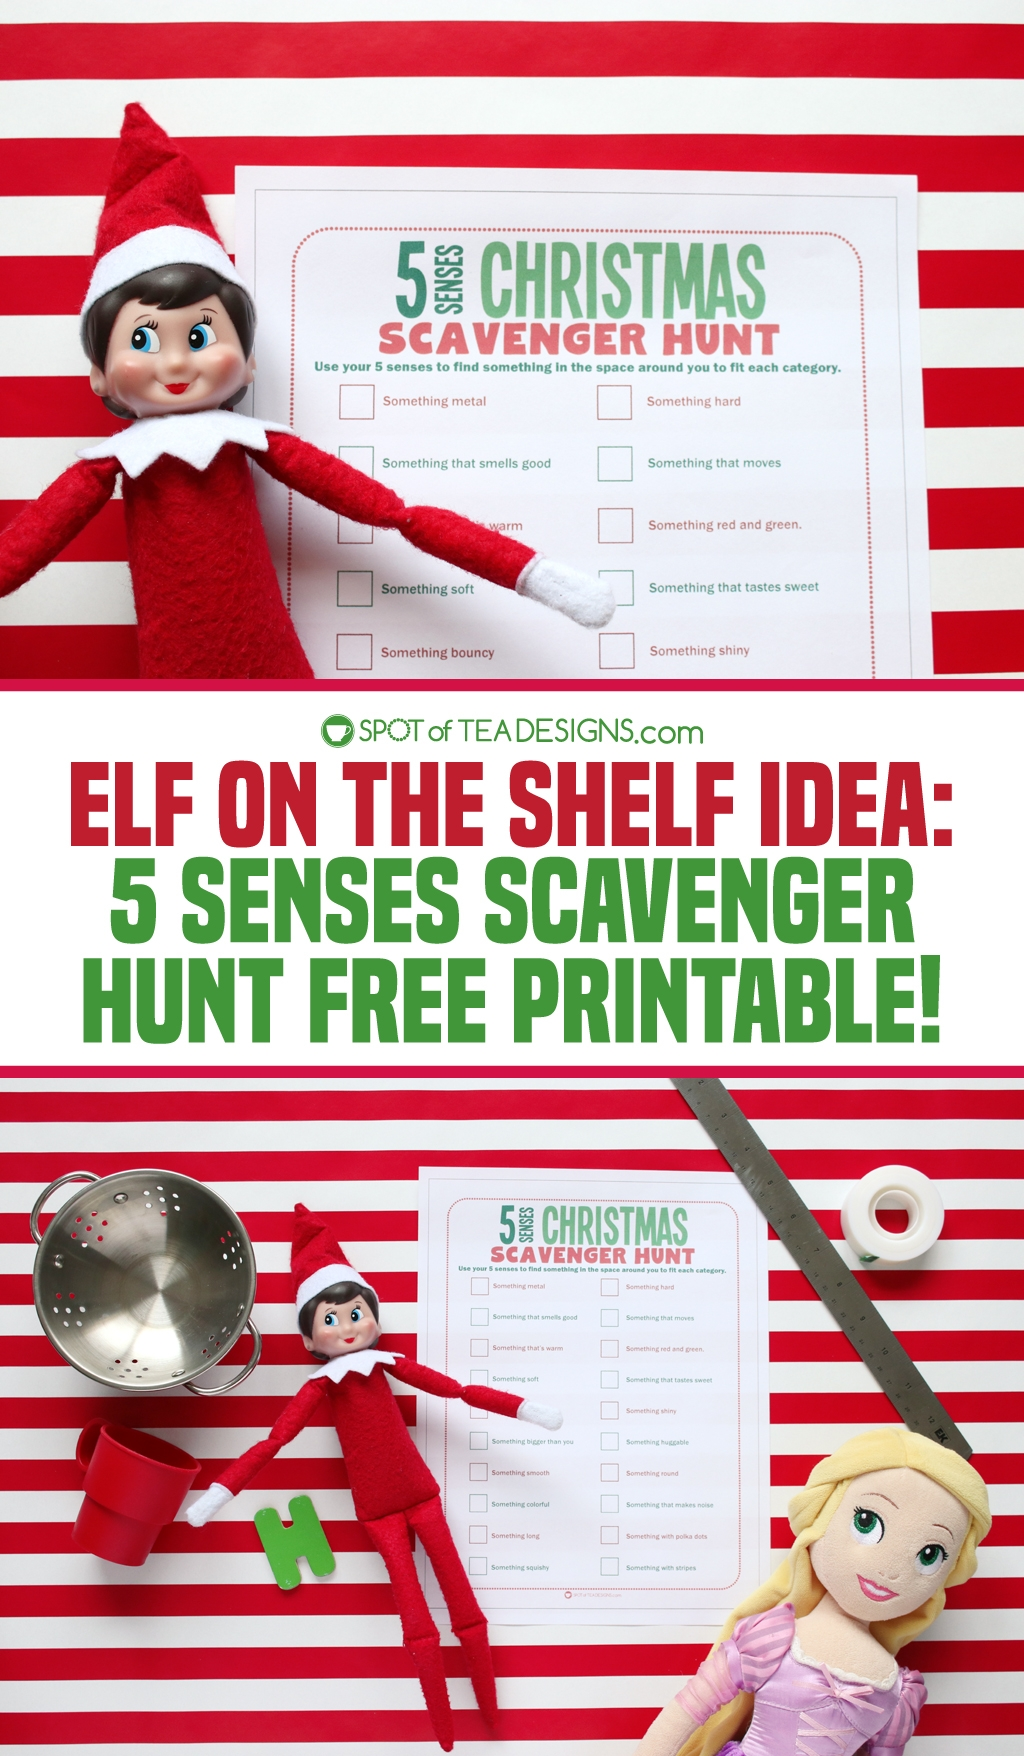 Elf on the shelf idea | 5 senses Christmas scavenger hunt free printable activity sheet | spotofteadesigns.com